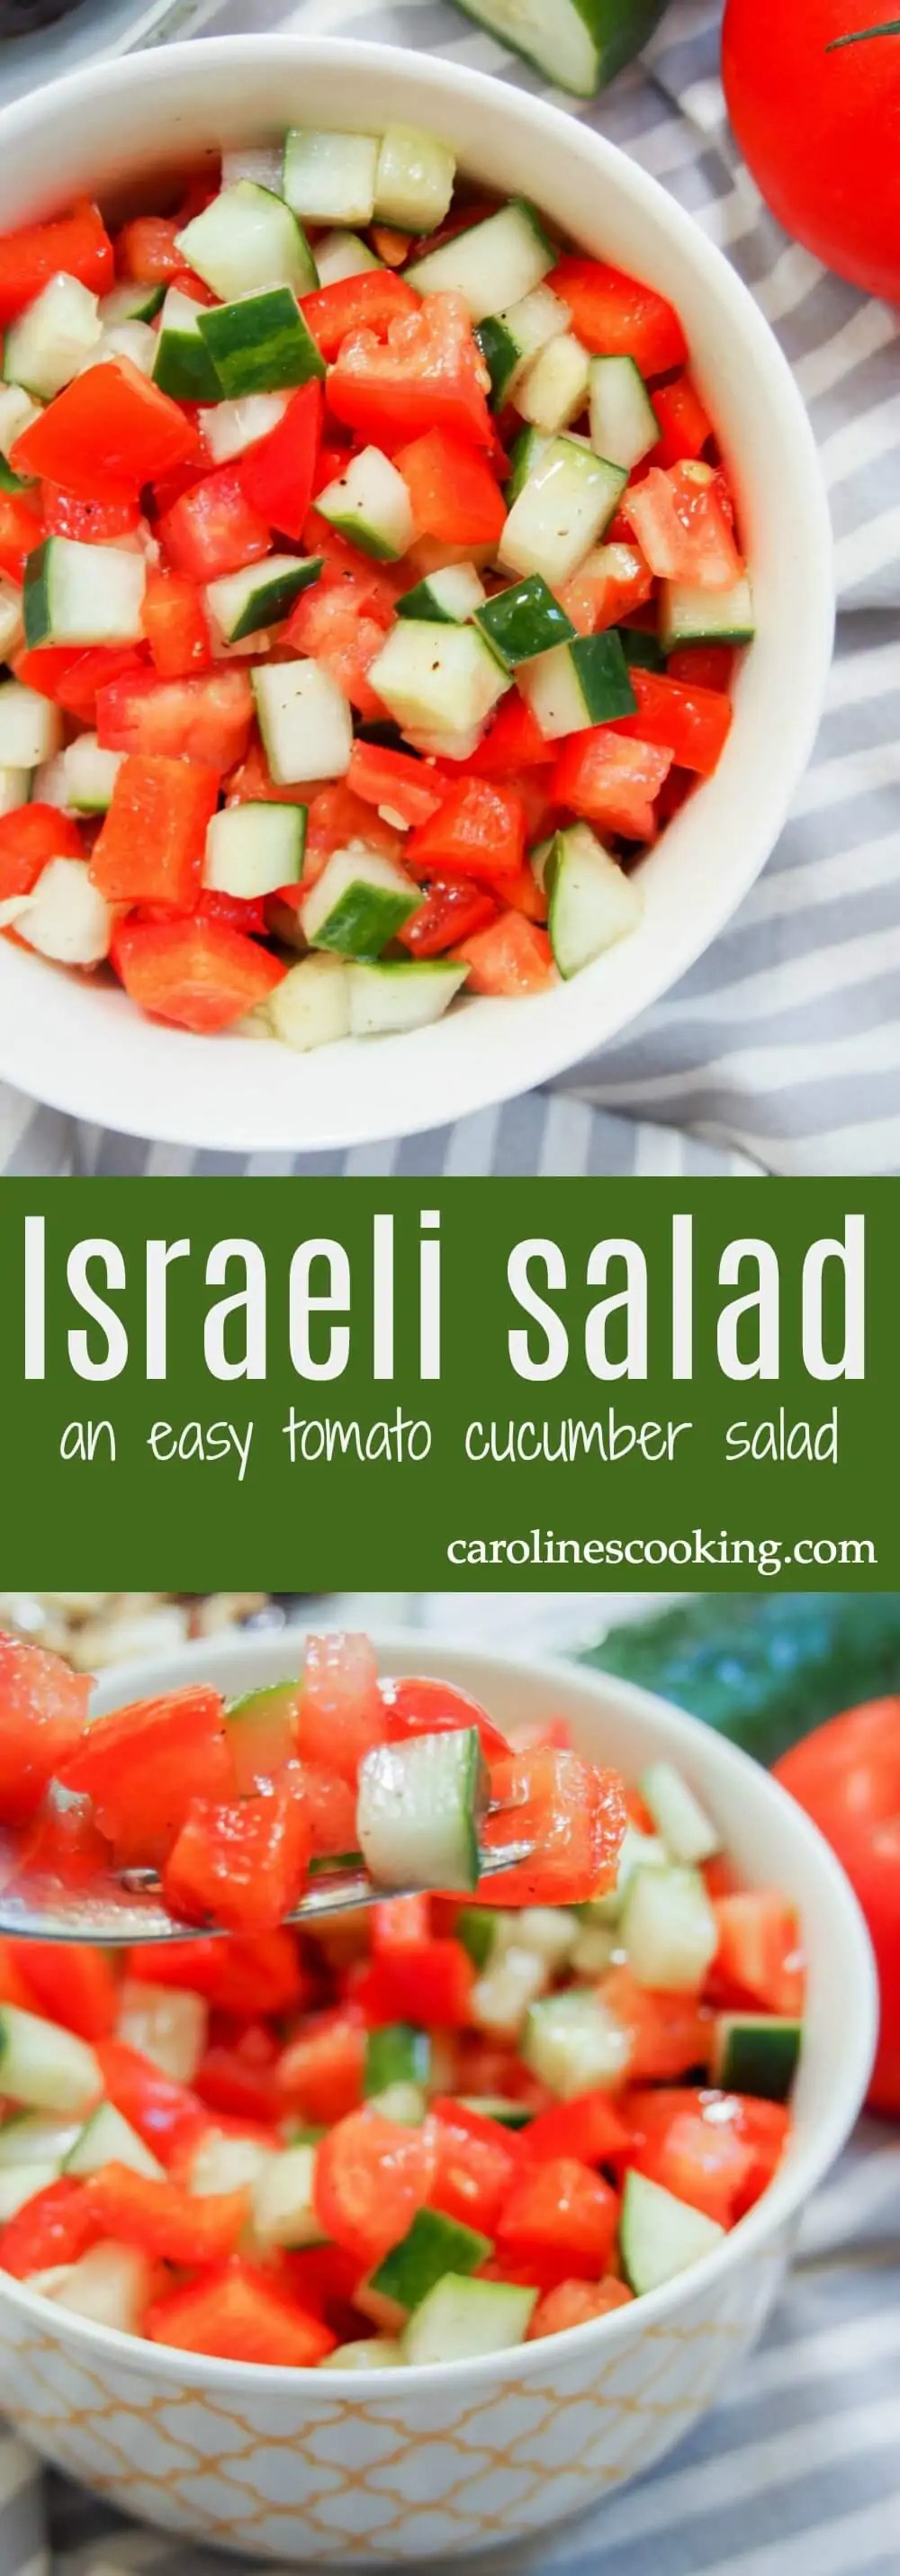 Israeli salad is an incredibly simple combination but deliciously fresh. It's an iconic tomato cucumber salad that you'll find everywhere in Israel from alongside breakfast to in your pitta with warm falafel. Incredibly versatile, vegan and a fantastic summery side,